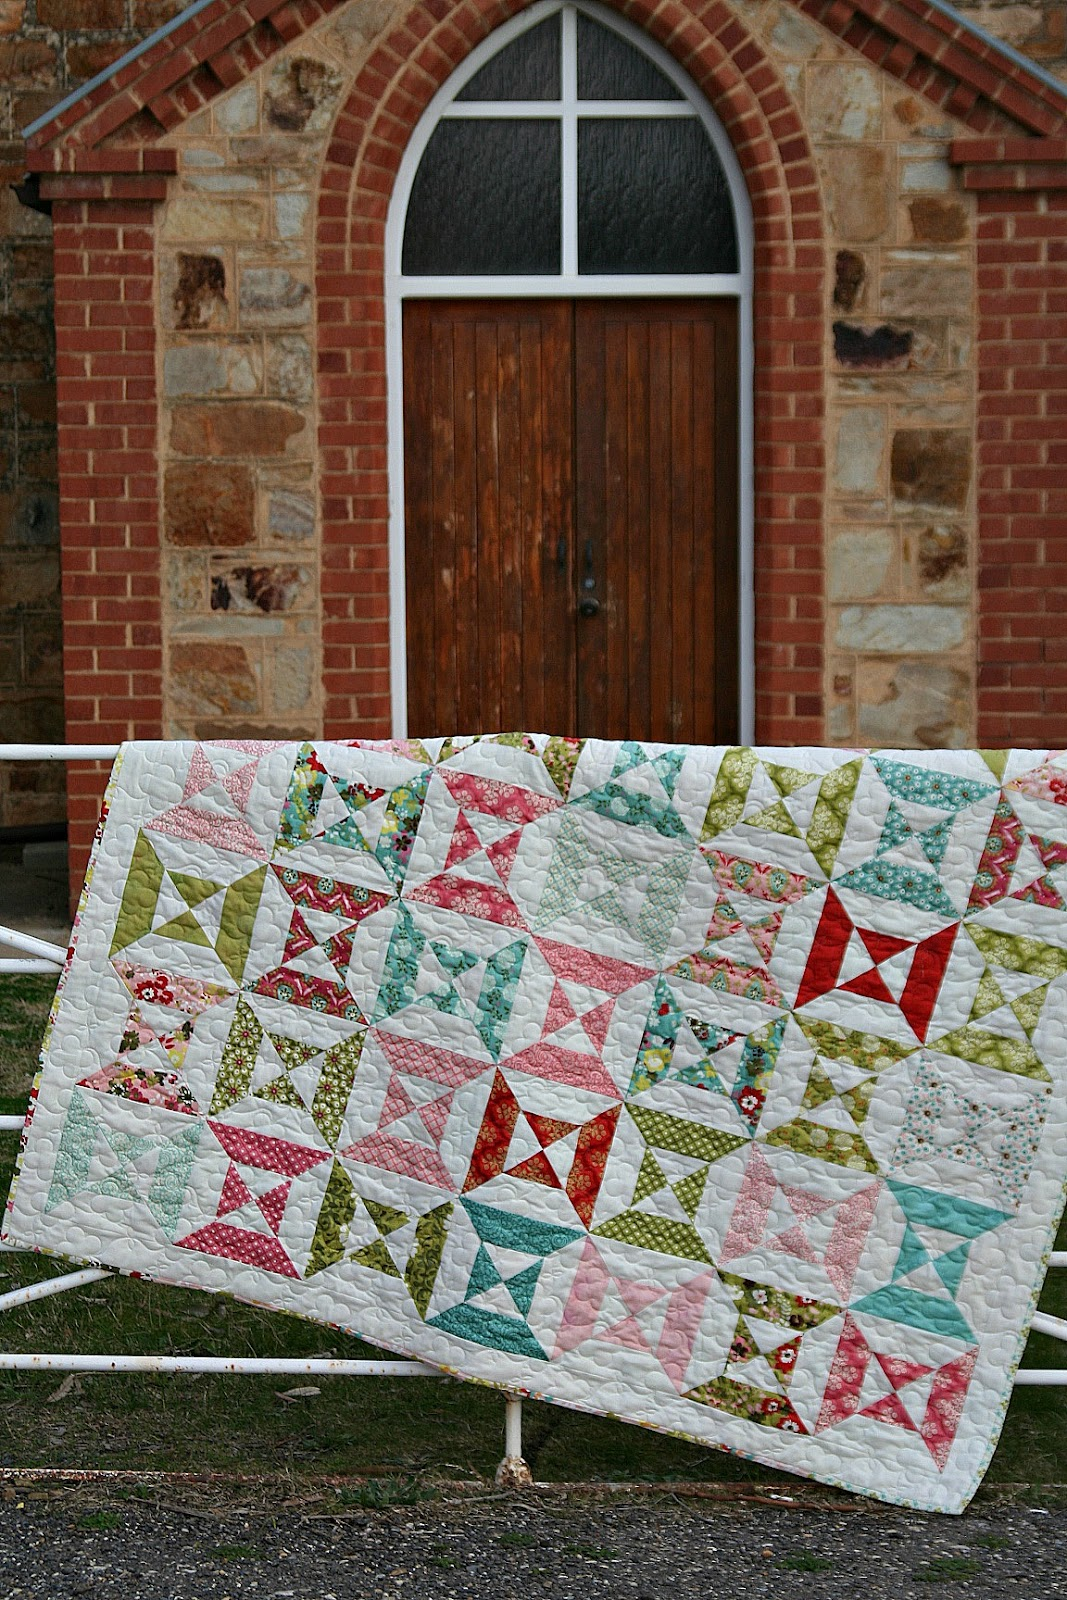 England street quilts more quilts pattern inspired by the summer at the park video tutorial by missouri star quilt company i wrote a pattern for it and you can download it here baditri Images